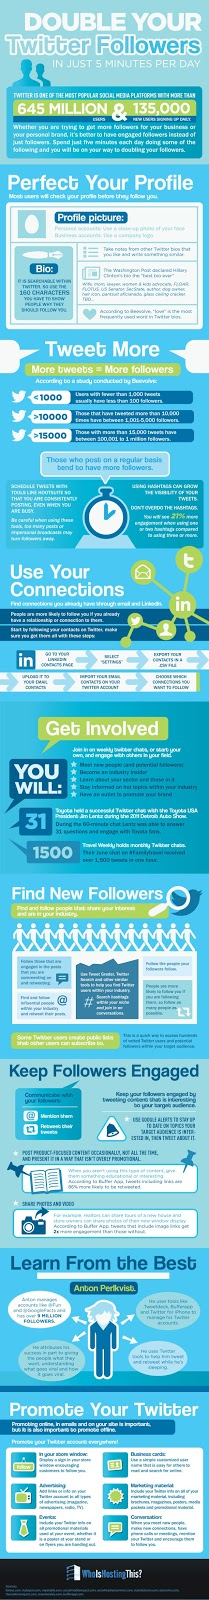 Double Your Twitter Followers Infographic